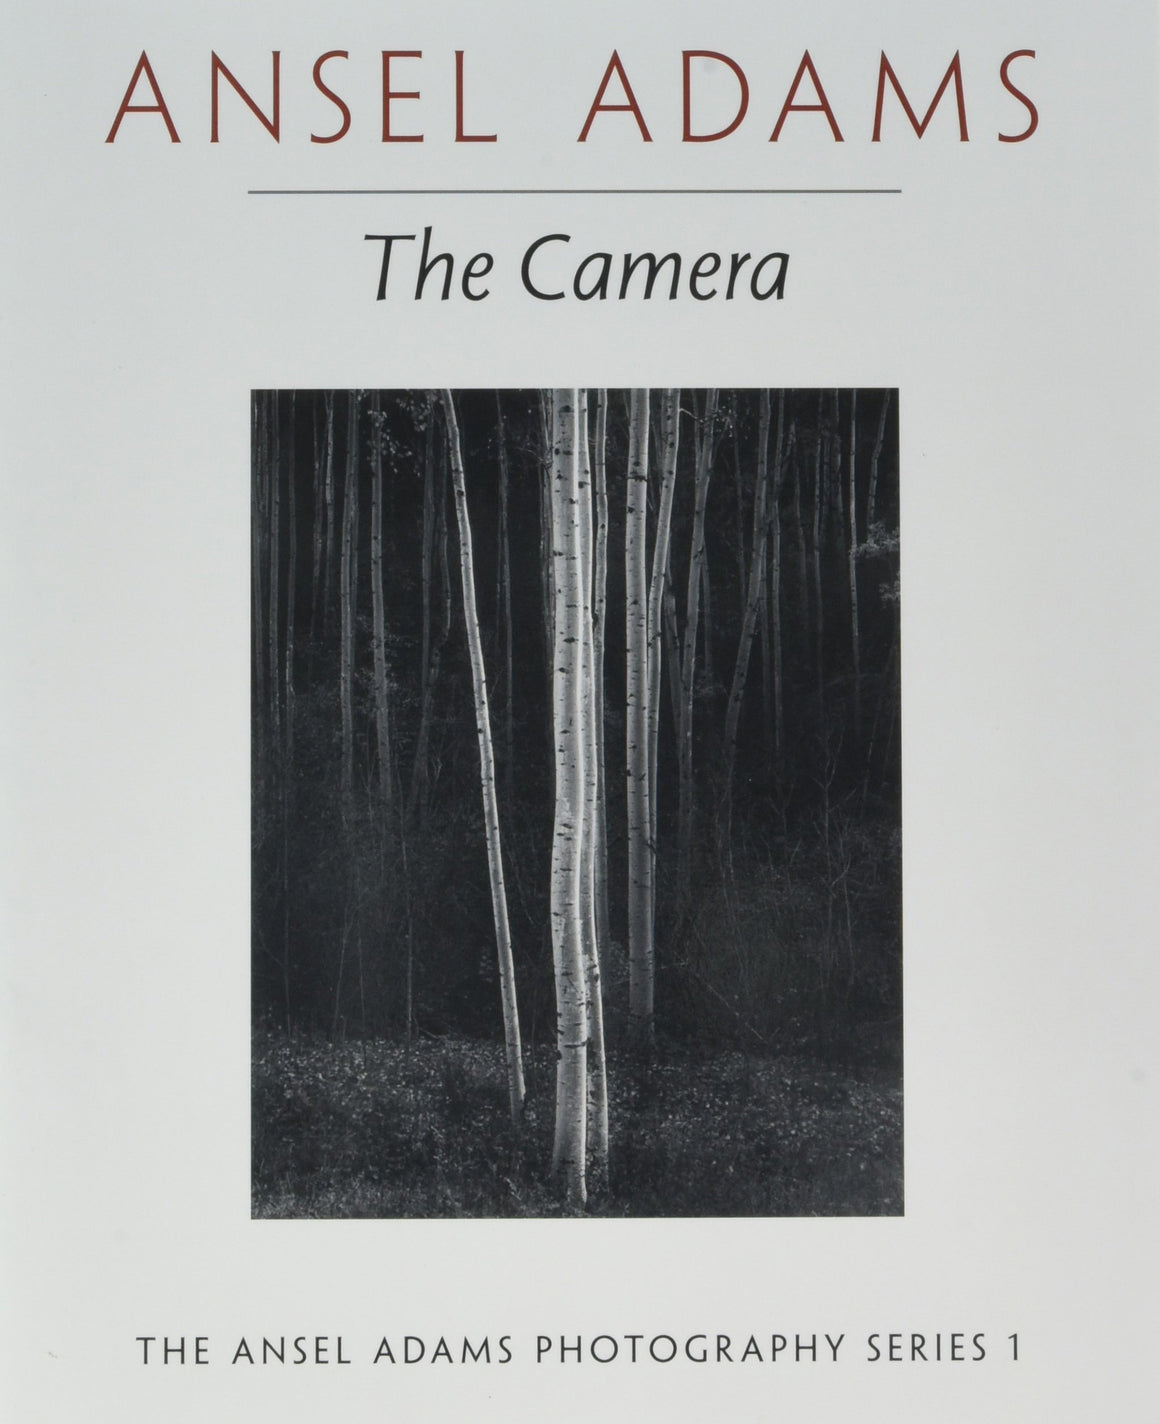 Book featuring cover art of The Camera